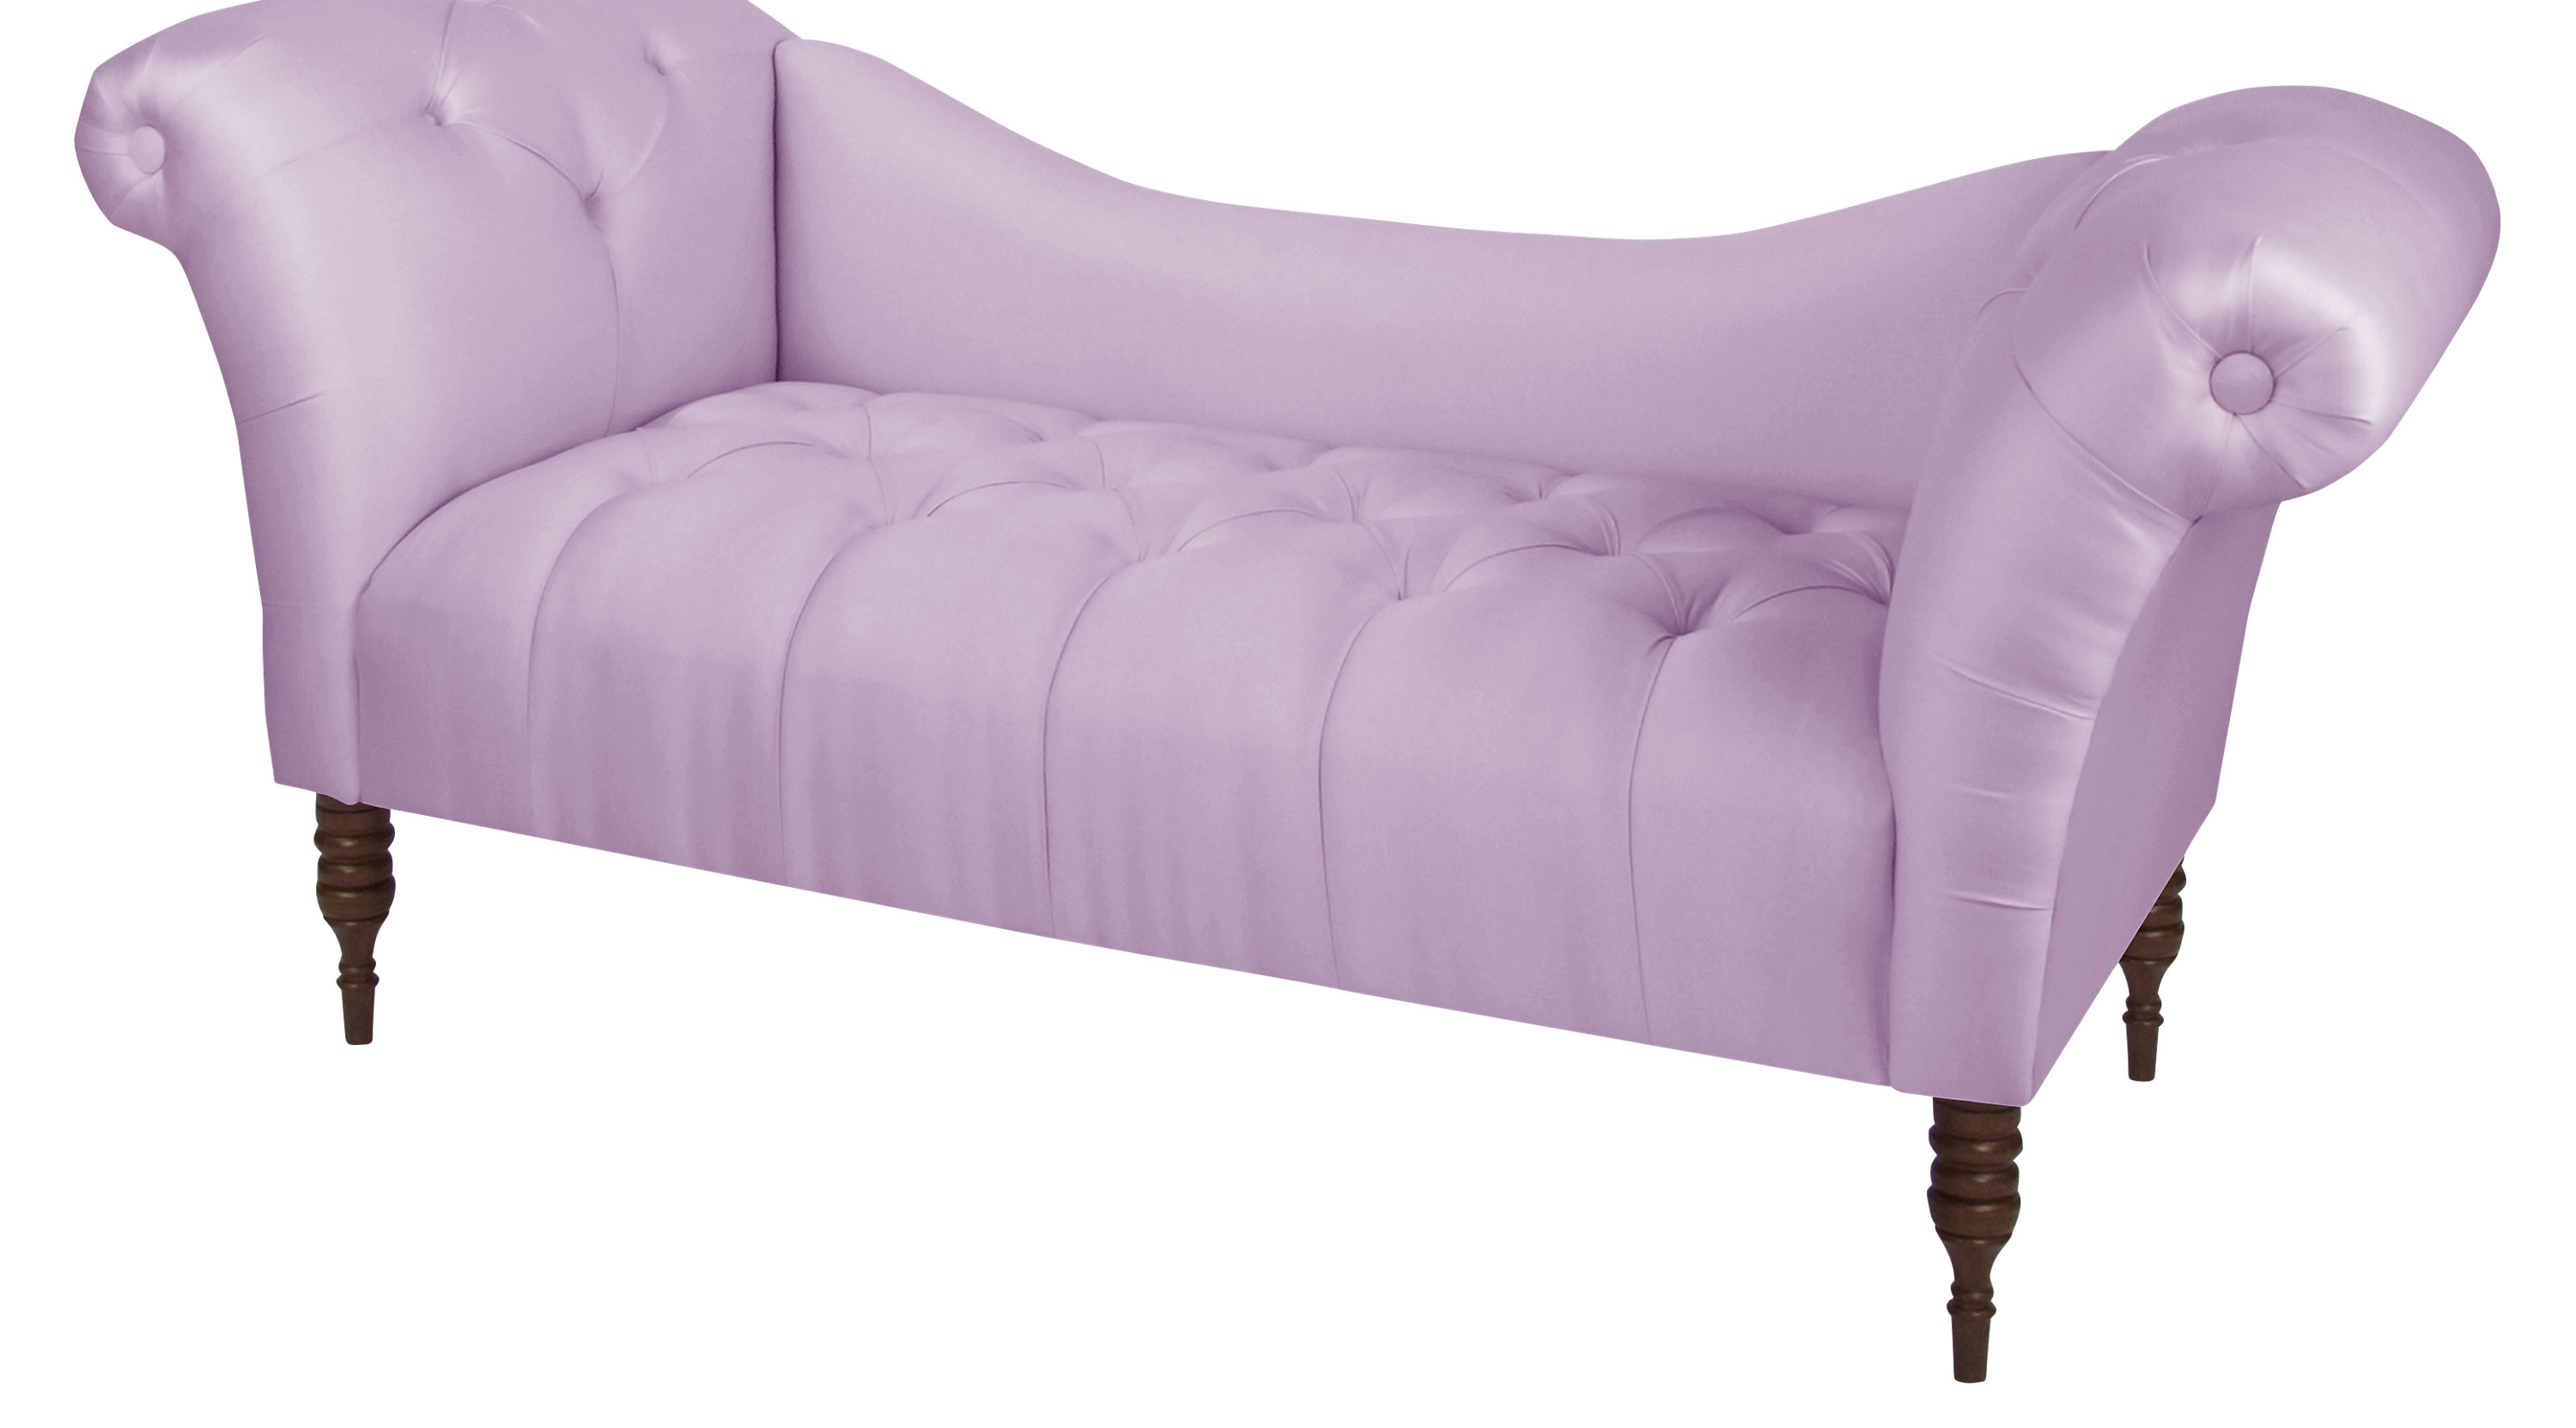 Chaises – Chaise Lounge Sofas Intended For Latest Purple Chaises (View 2 of 15)